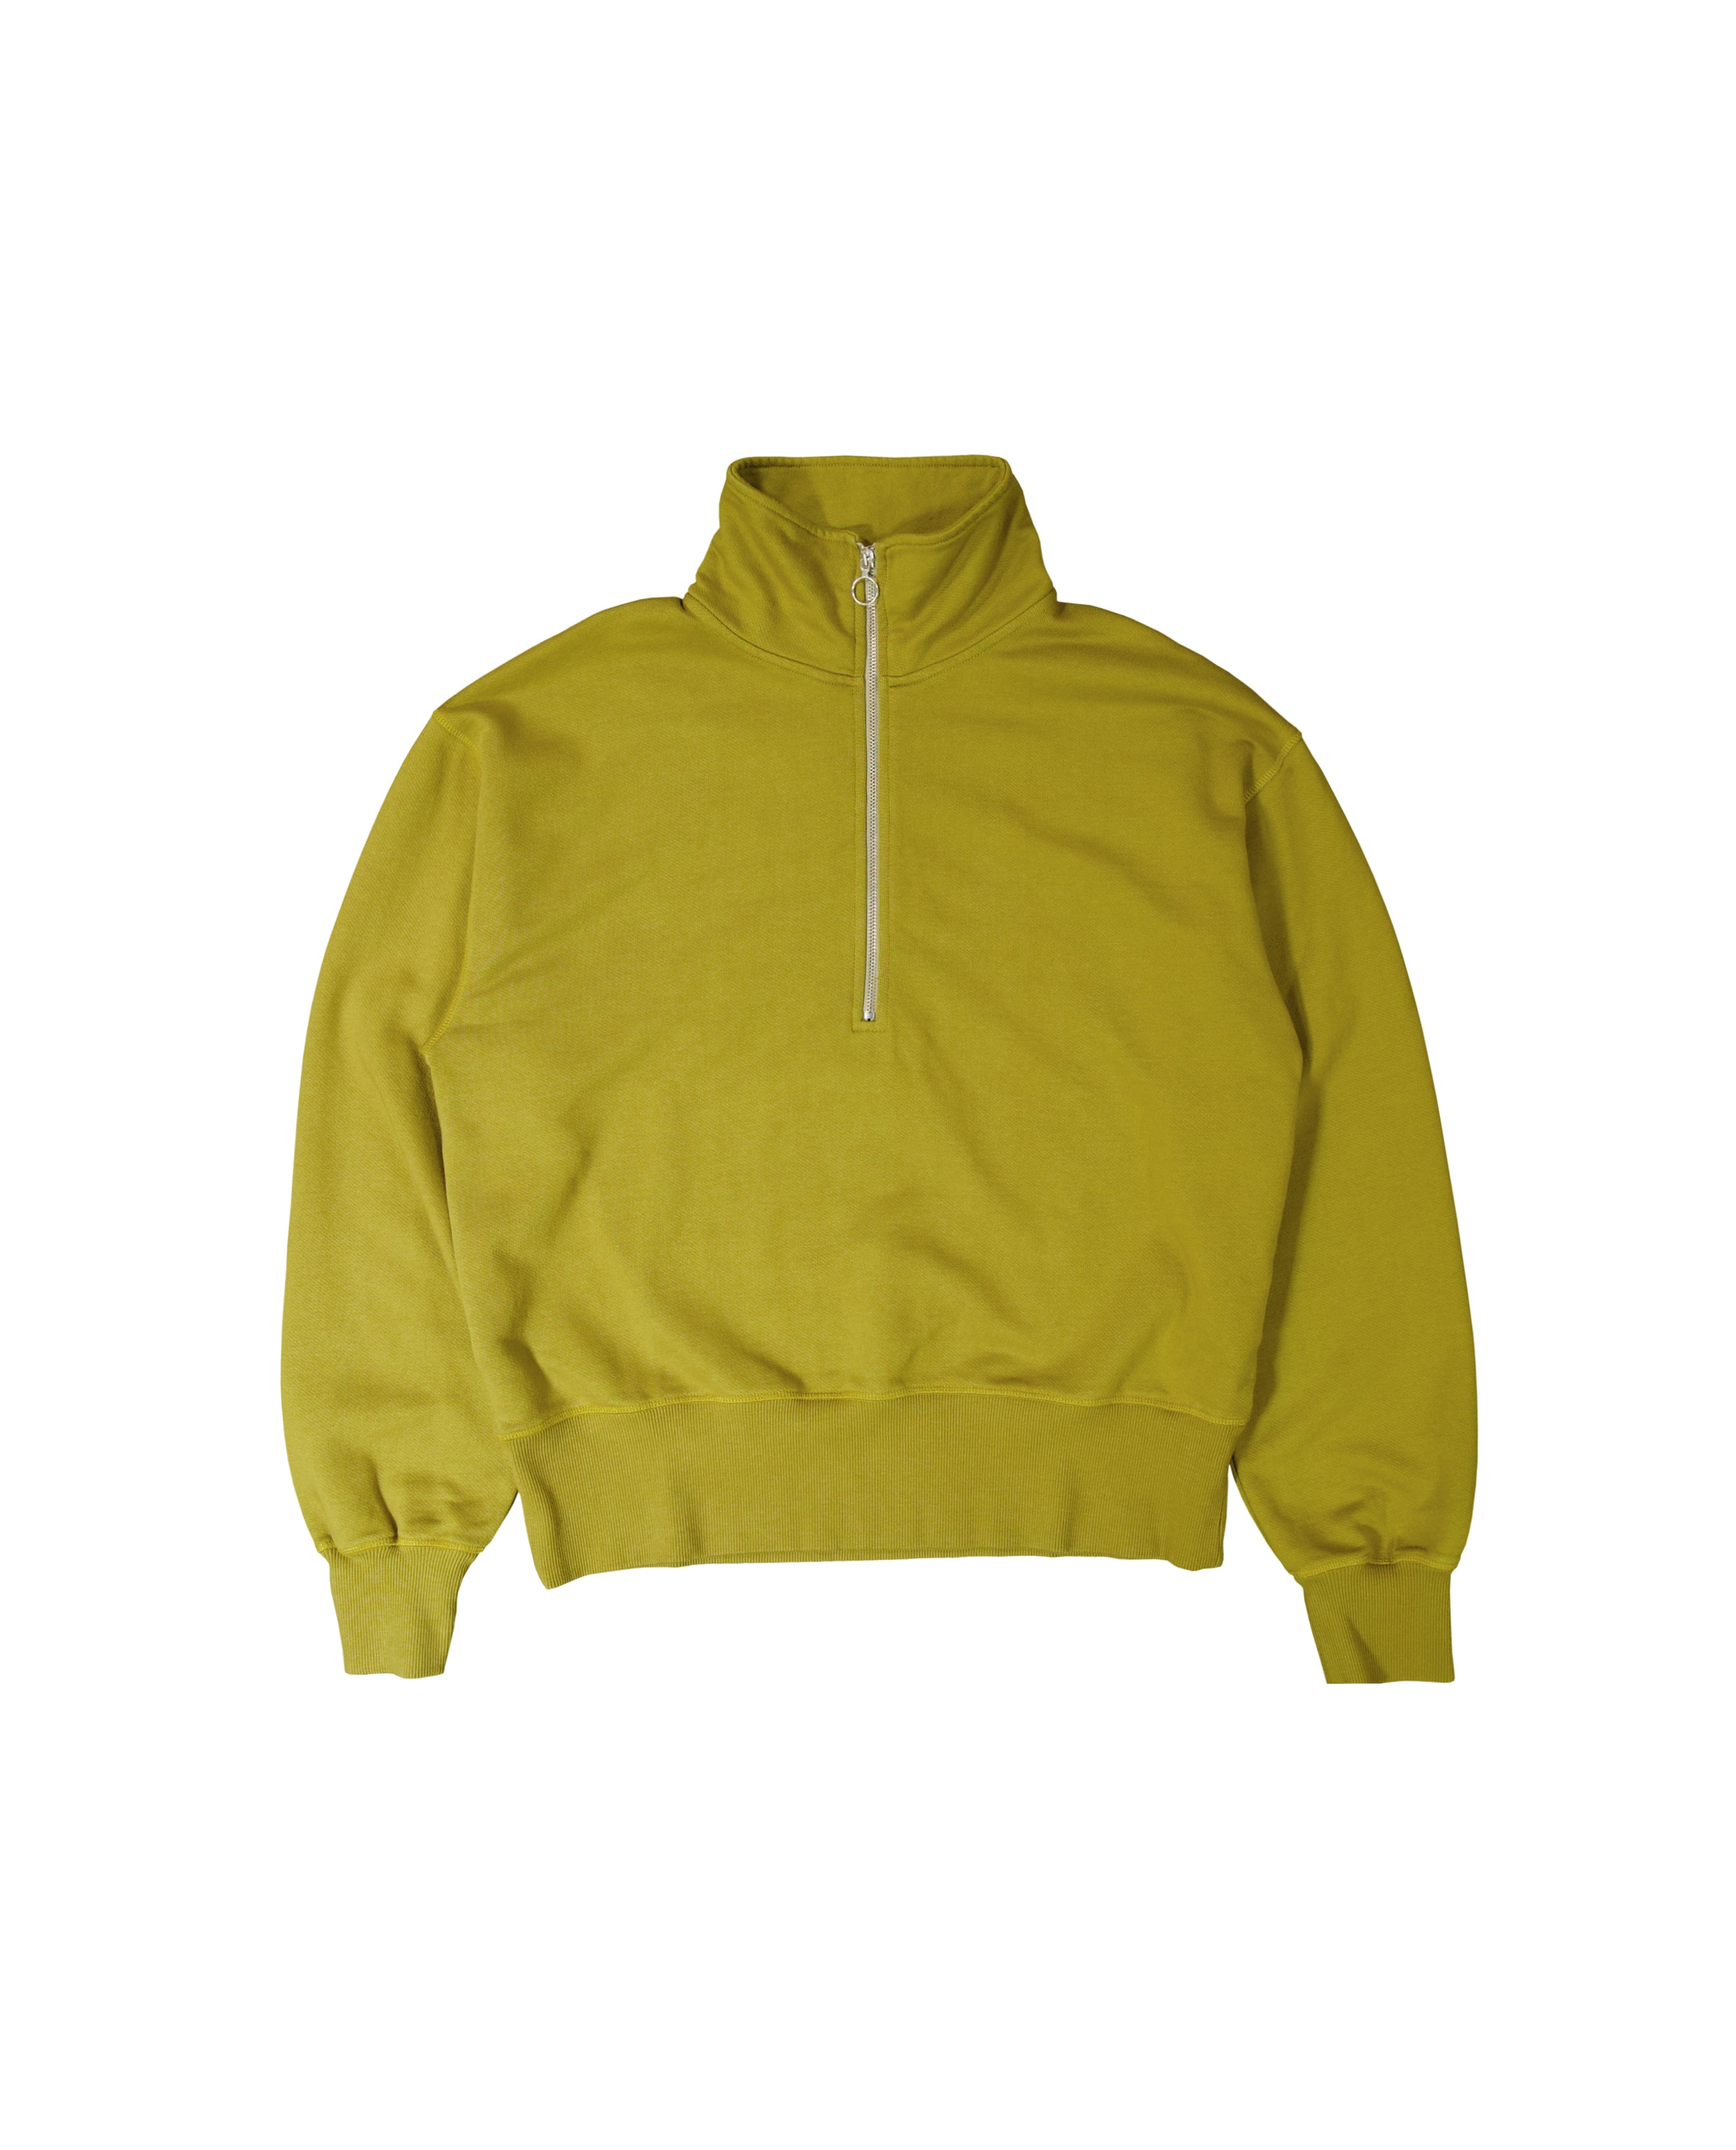 HALF ZIP SWEATER - GREEN LEMON